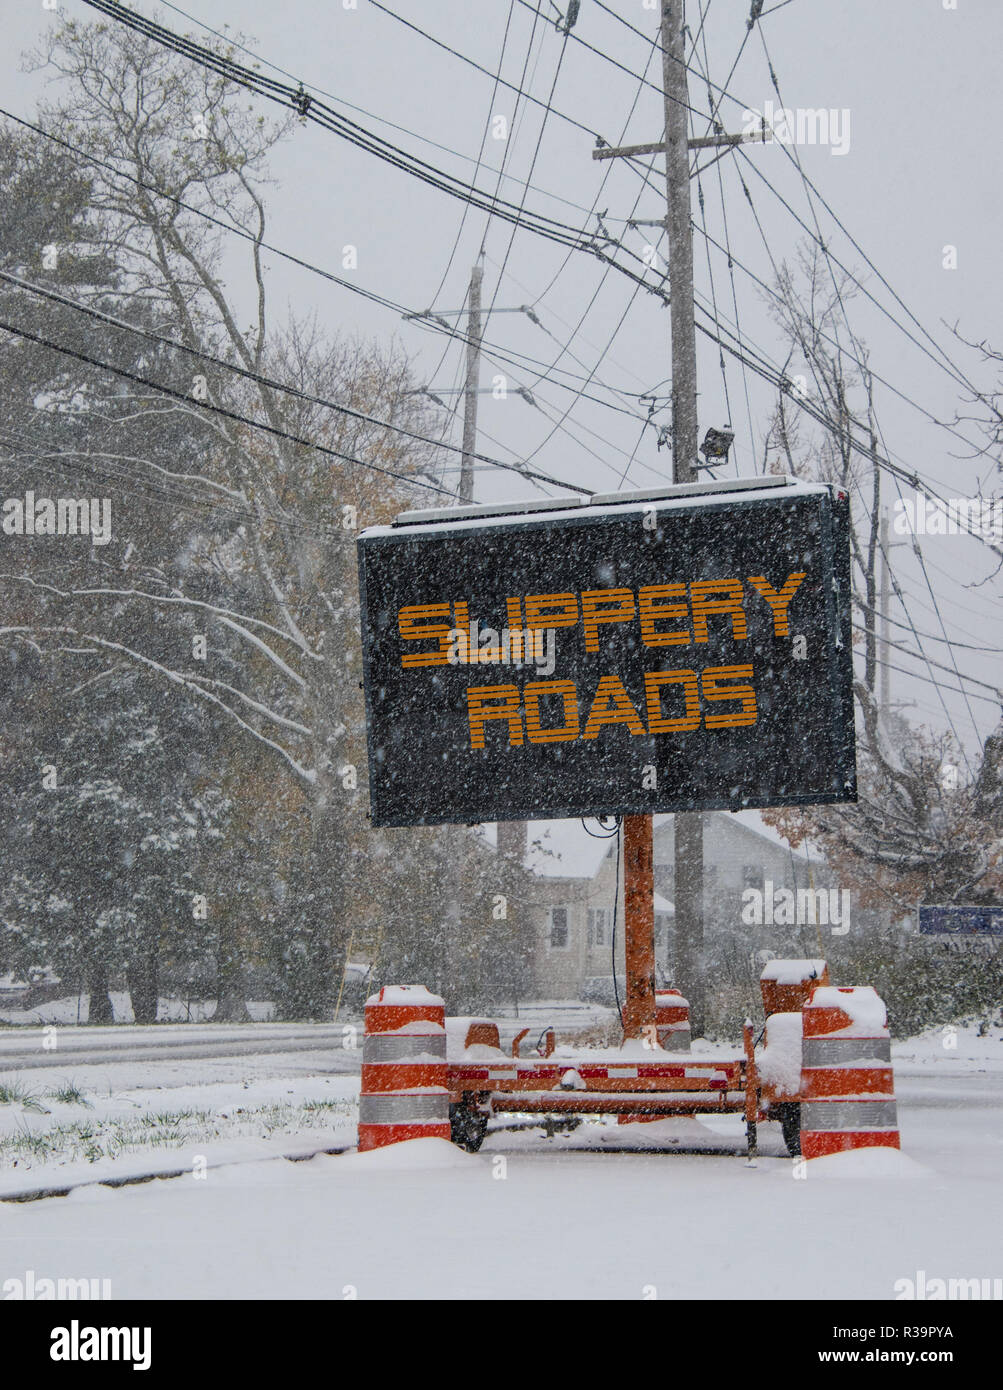 Electric road traffic mobile sign by the side of a snow covered road in winter with snow falling warning of slippery roads - Stock Image